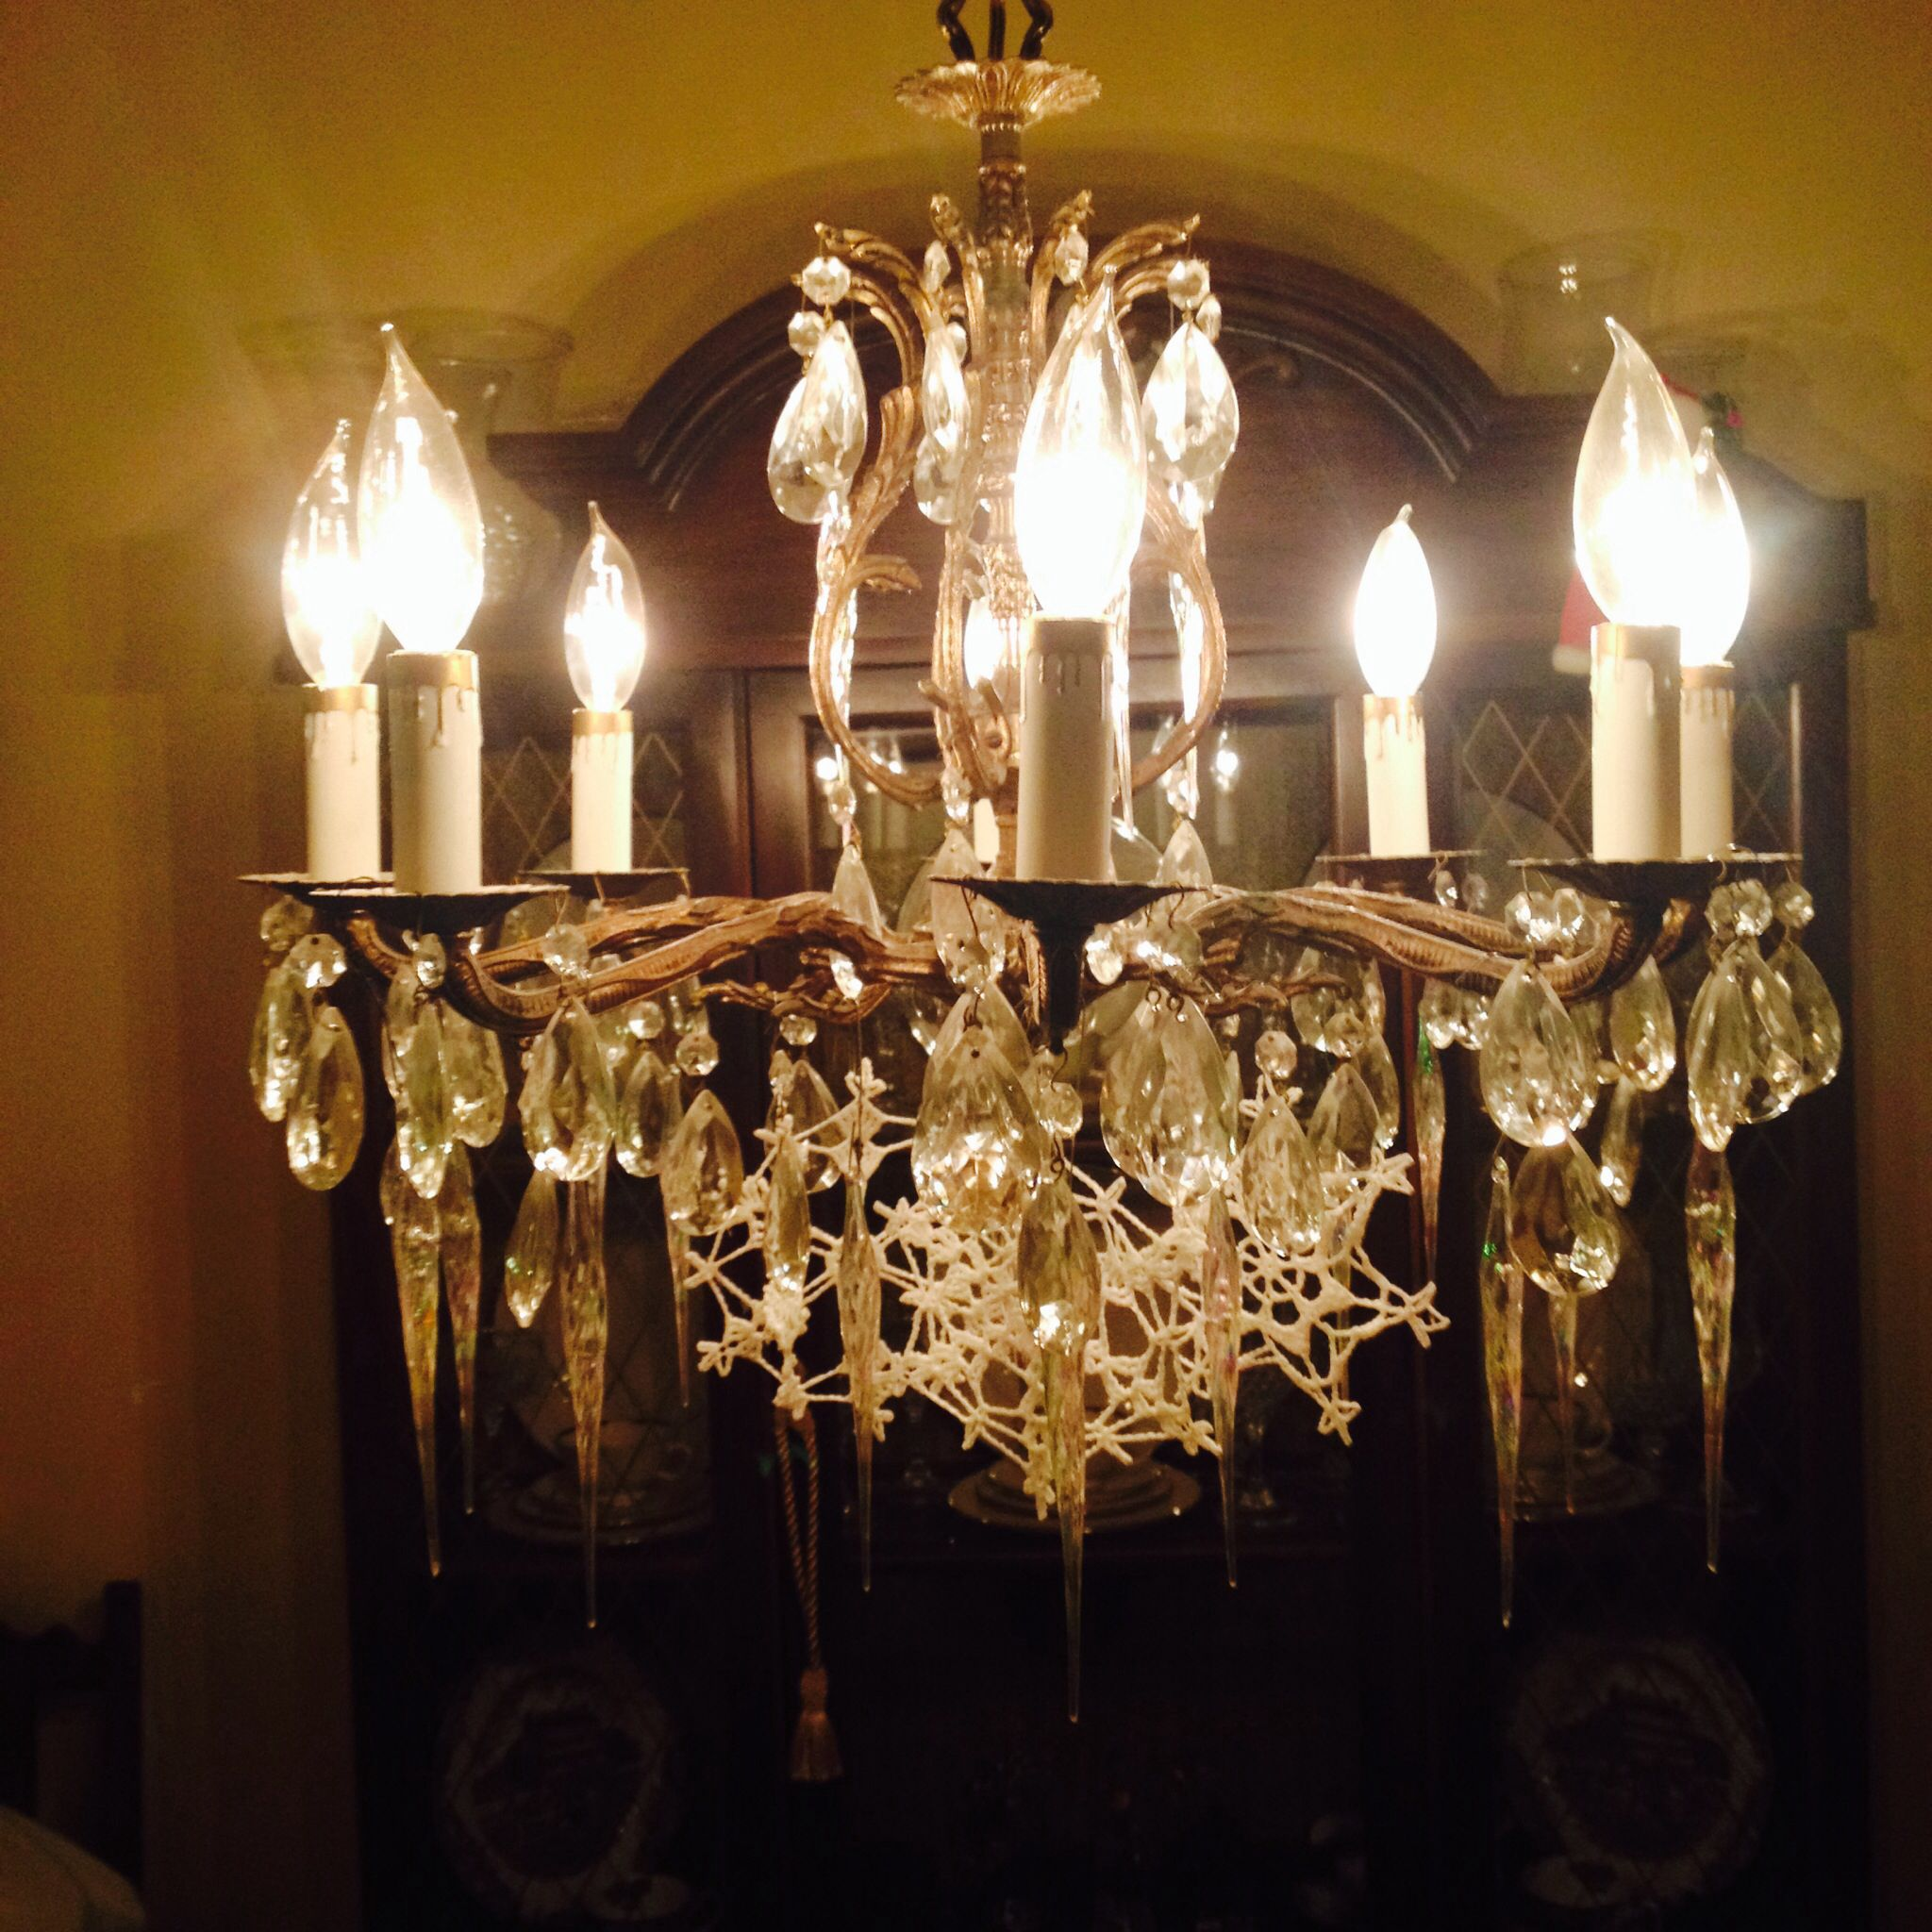 My mother's chandelier for Christmas, hanging icicles and snowflakes!